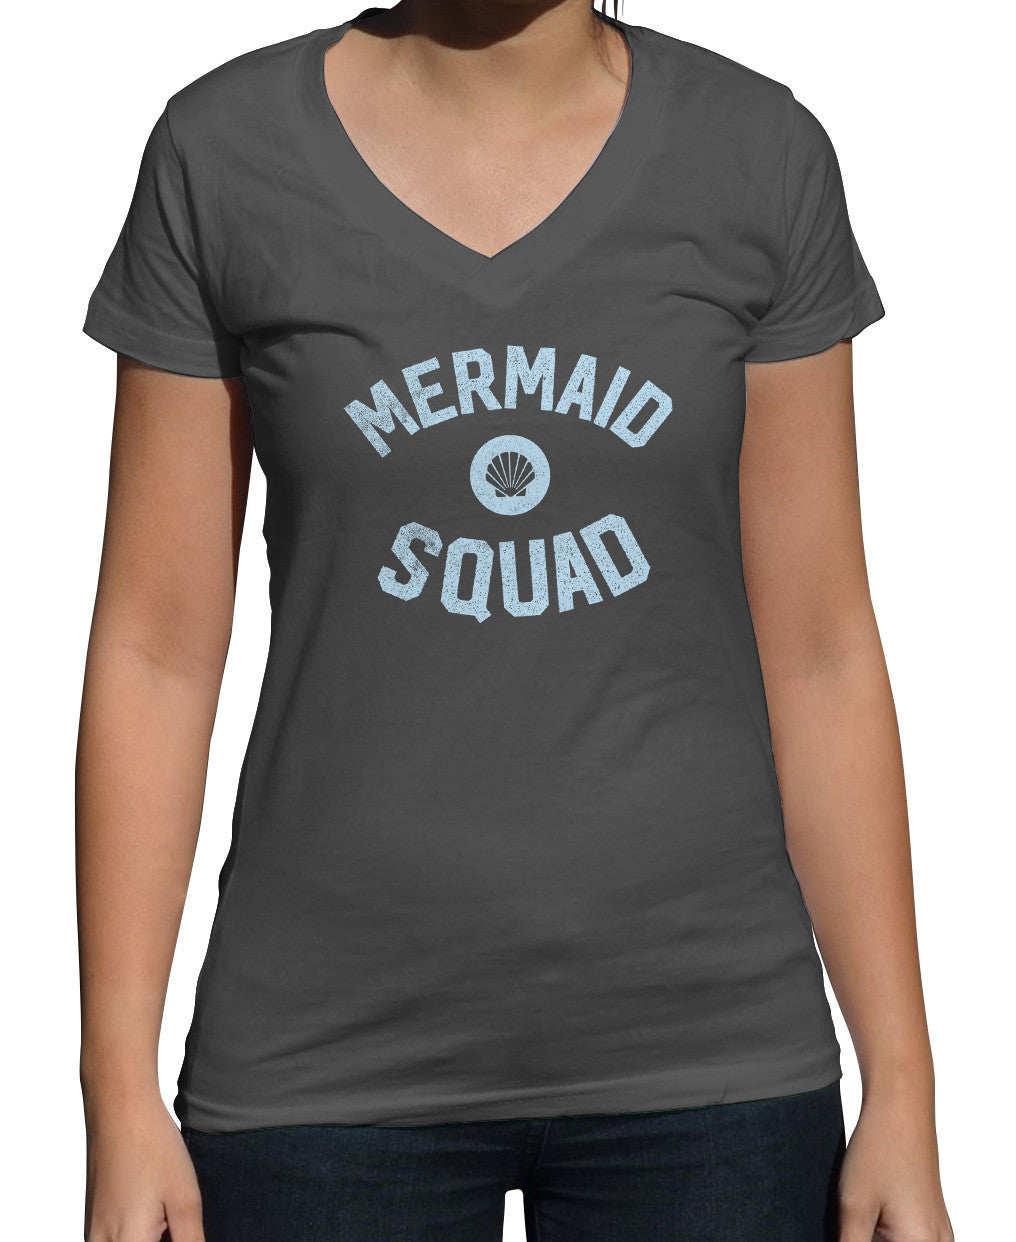 Women's Mermaid Squad Vneck T-Shirt